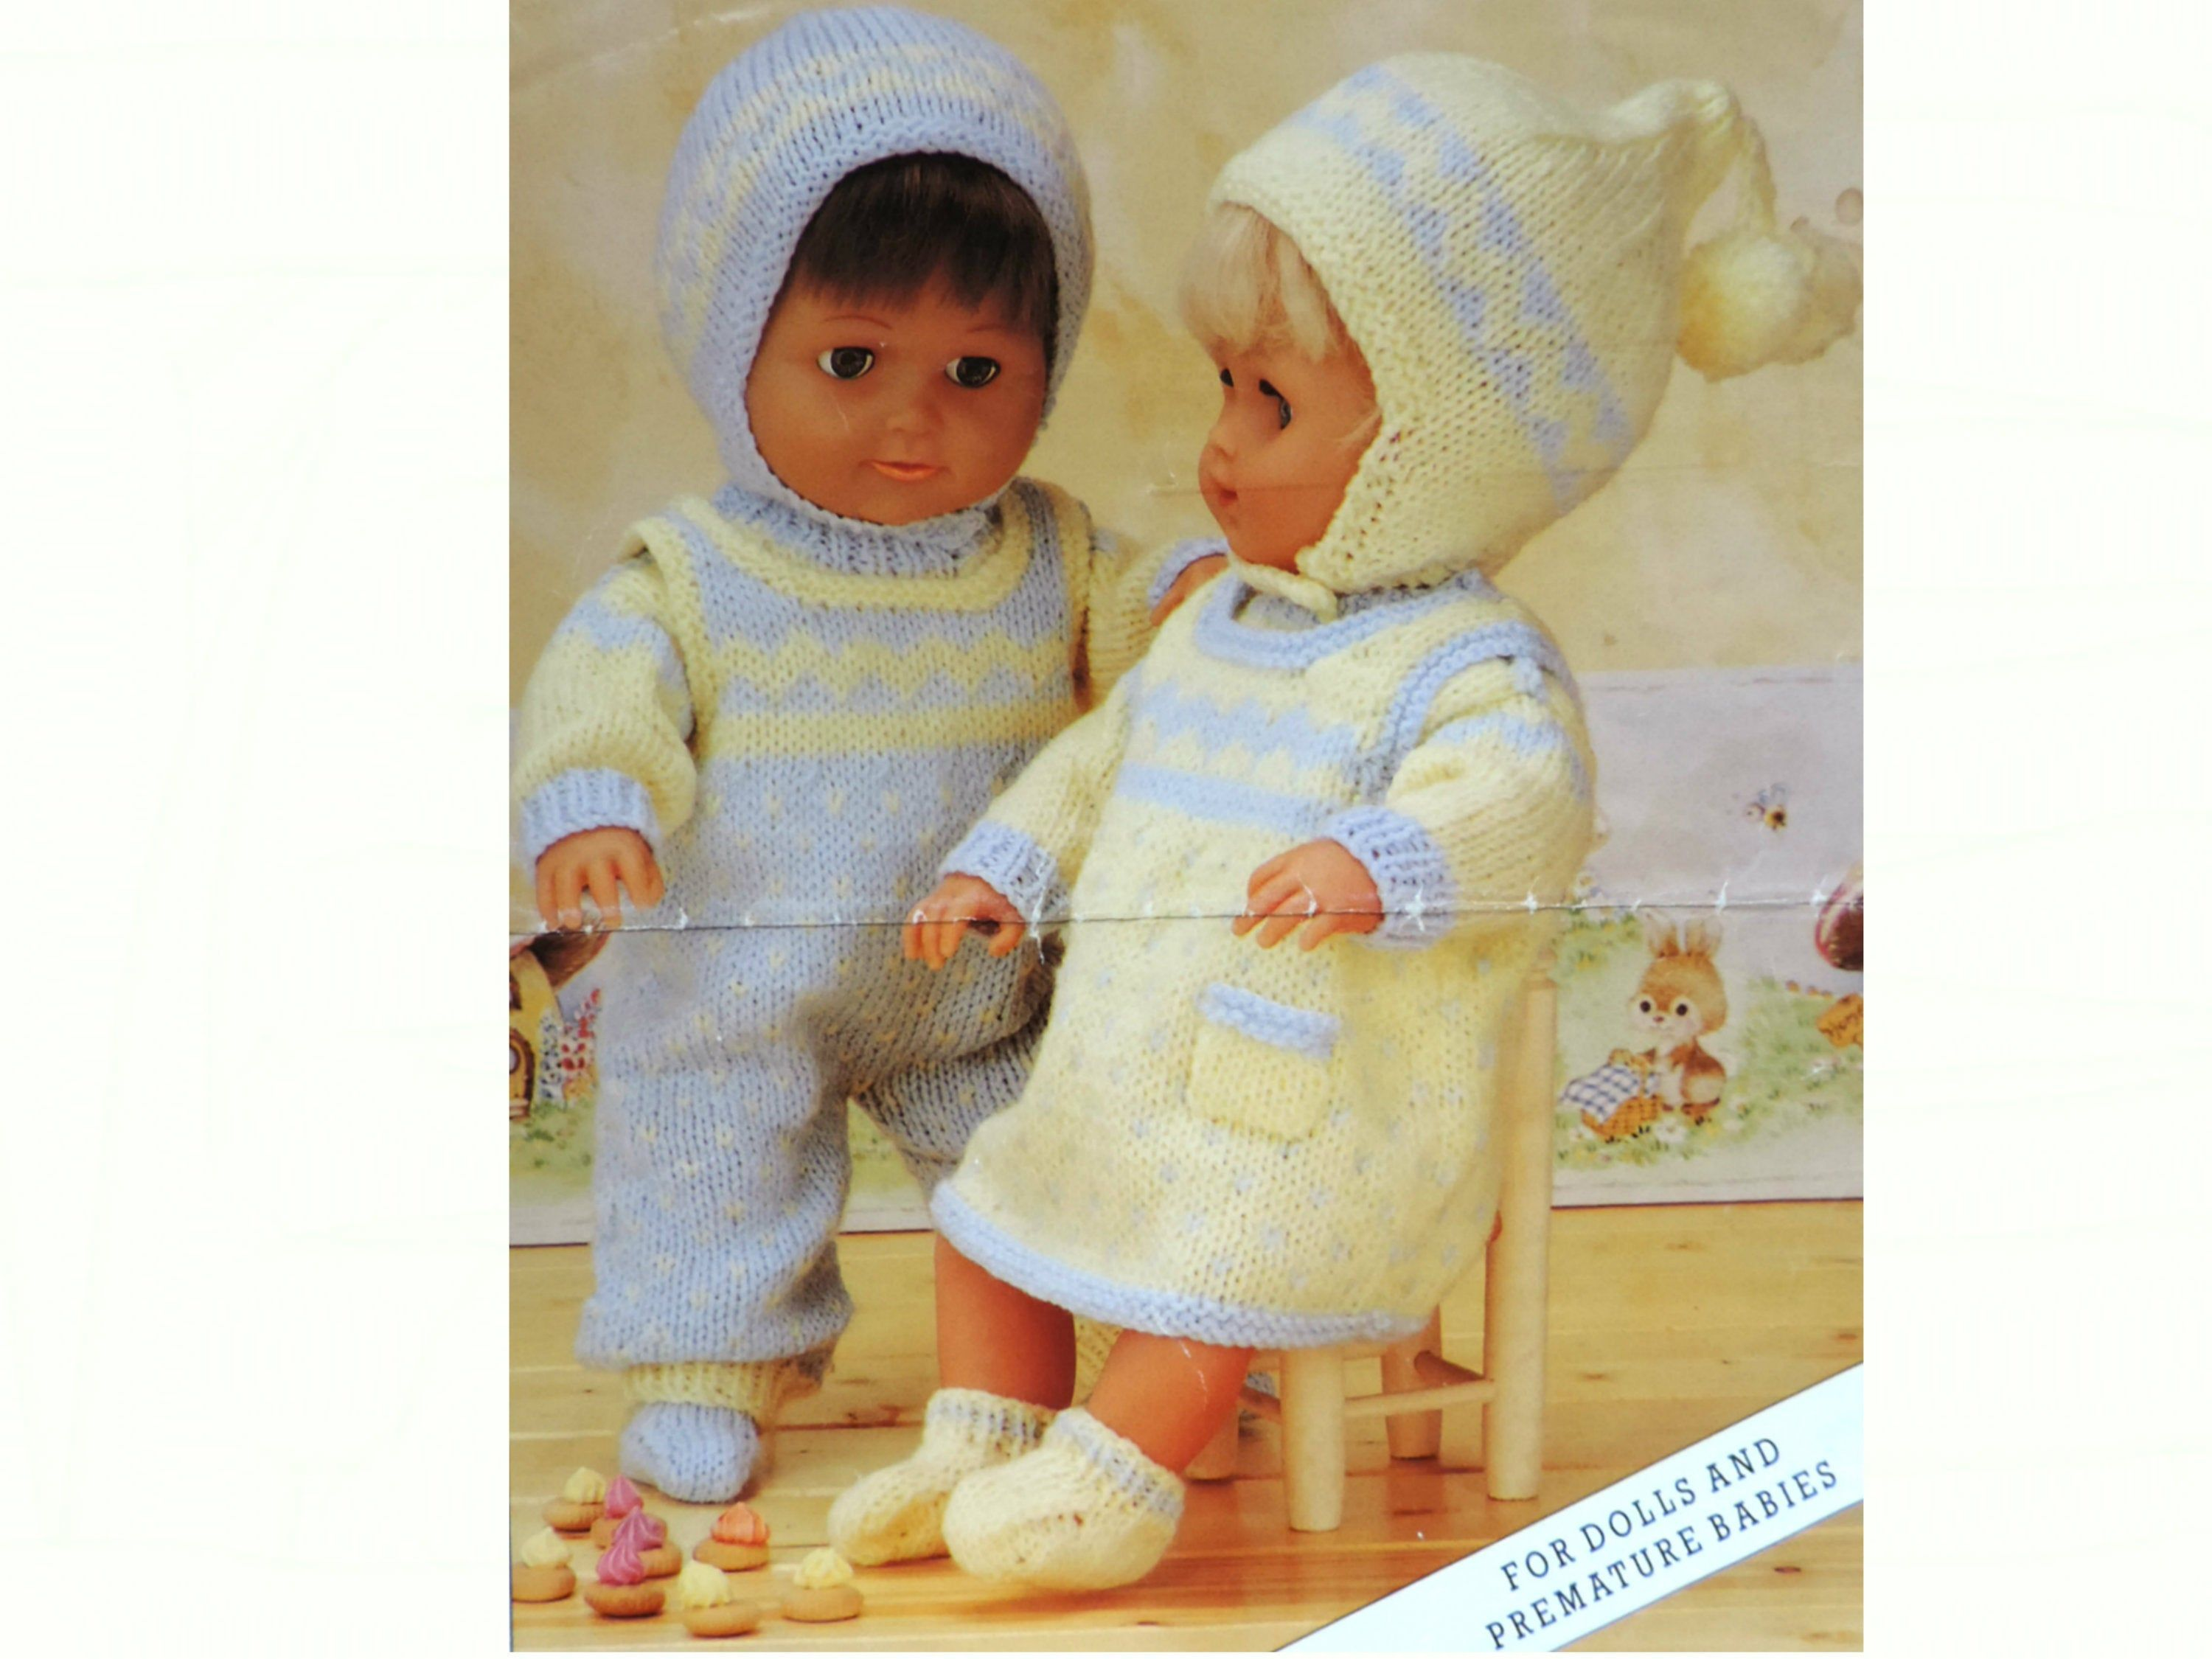 Baby Girl Boy Dolls Clothes Knitting Pattern Pdf Pinafore Dress Sweater Dungarees Hats Socks For 12 16 20 Inch Doll Pre Boy Doll Clothes Boy Doll Doll Clothes